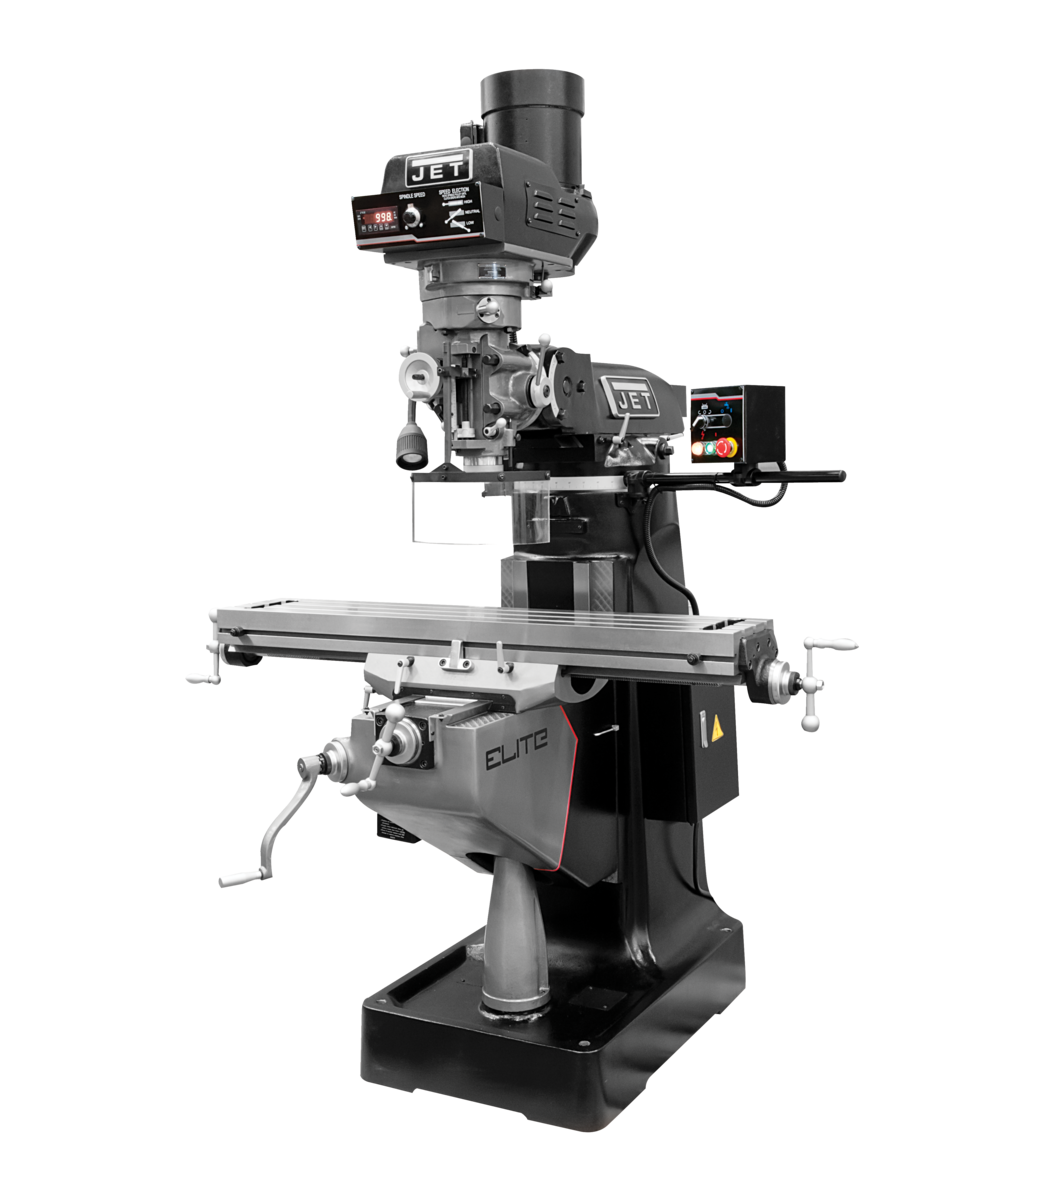 EVS-949 Mill with 2-Axis ACU-RITE 303  DRO and X, Y, Z-Axis JET Powerfeeds and USA Made Air Draw Bar